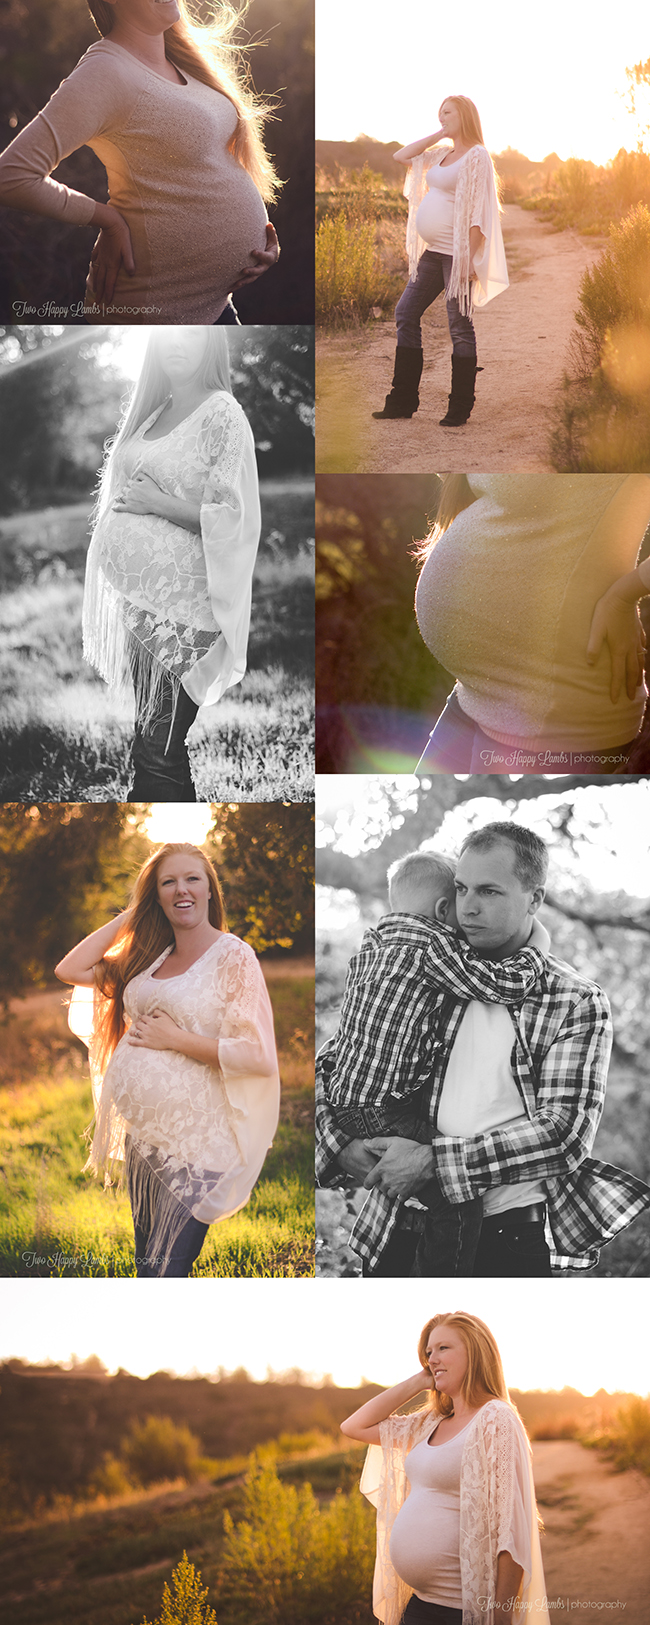 2014-11-two-happy-lambs-photography-meadow-field-sunset-maternity-pregnant-family-central-coast-photos-blog